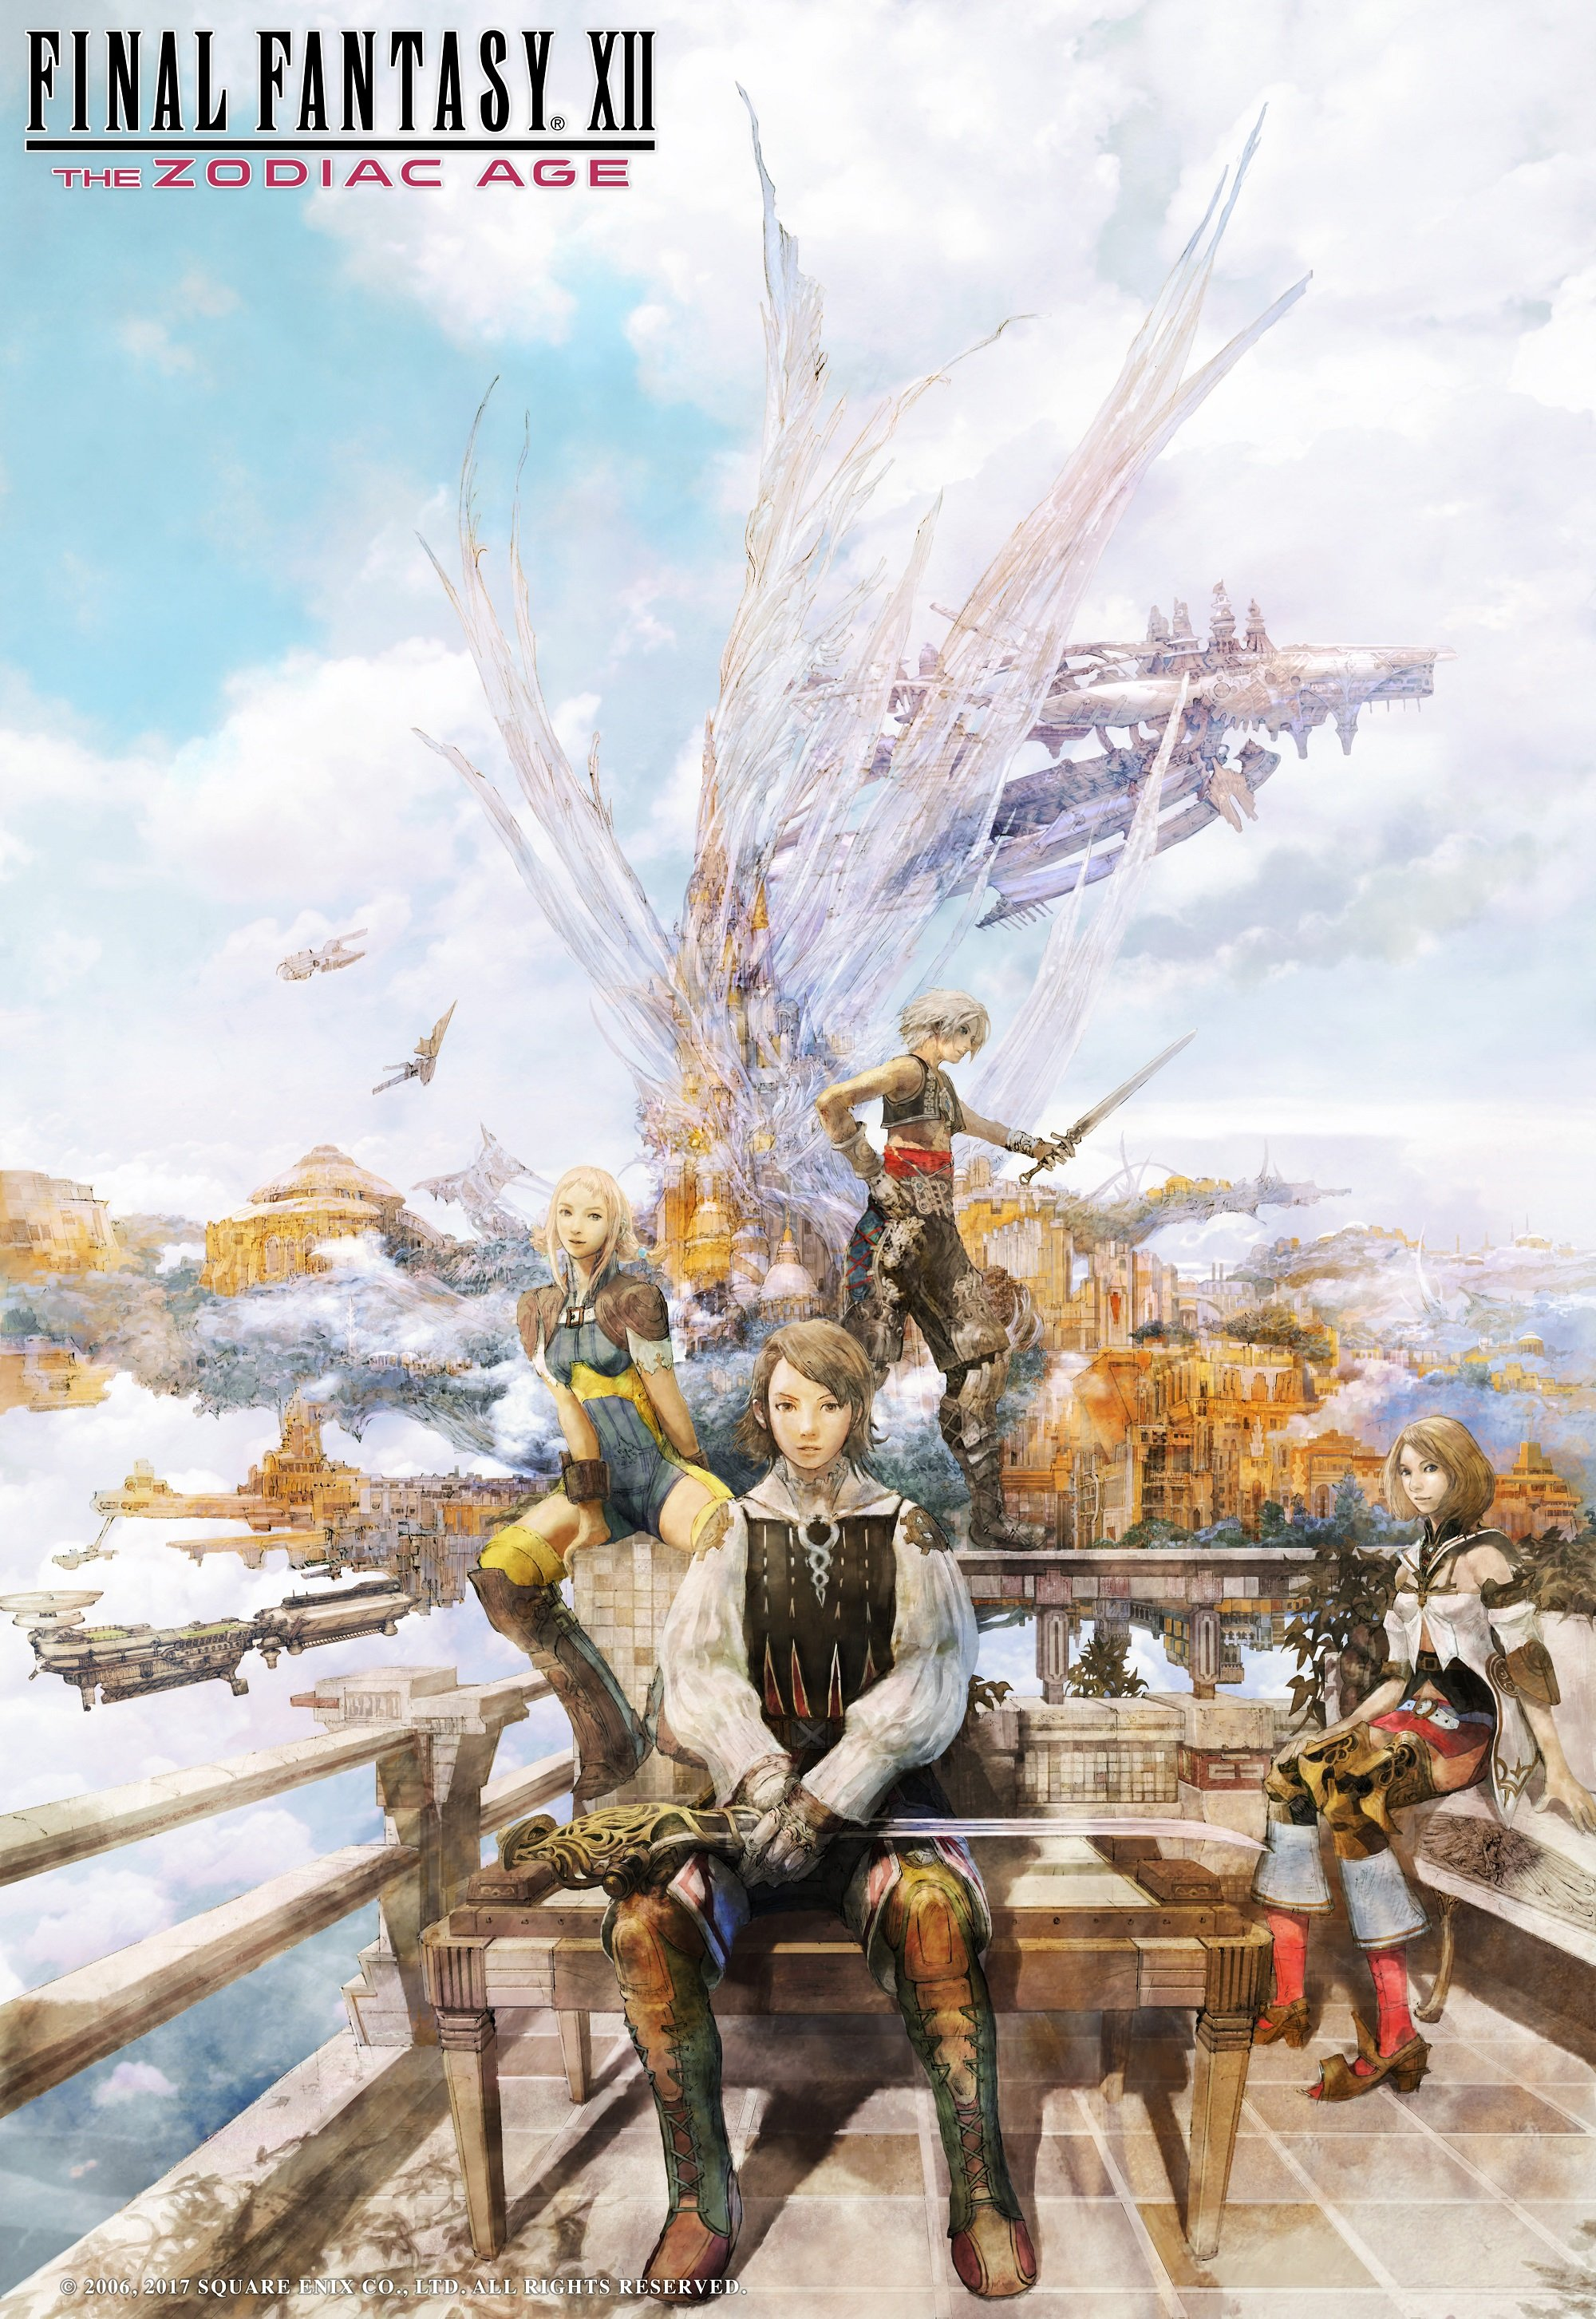 Final Fantasy Xii The Zodiac Age Celebrates 1 Million Sales With Free Ps4 Theme Fextralife He began work with squaresoft in 1991. final fantasy xii the zodiac age